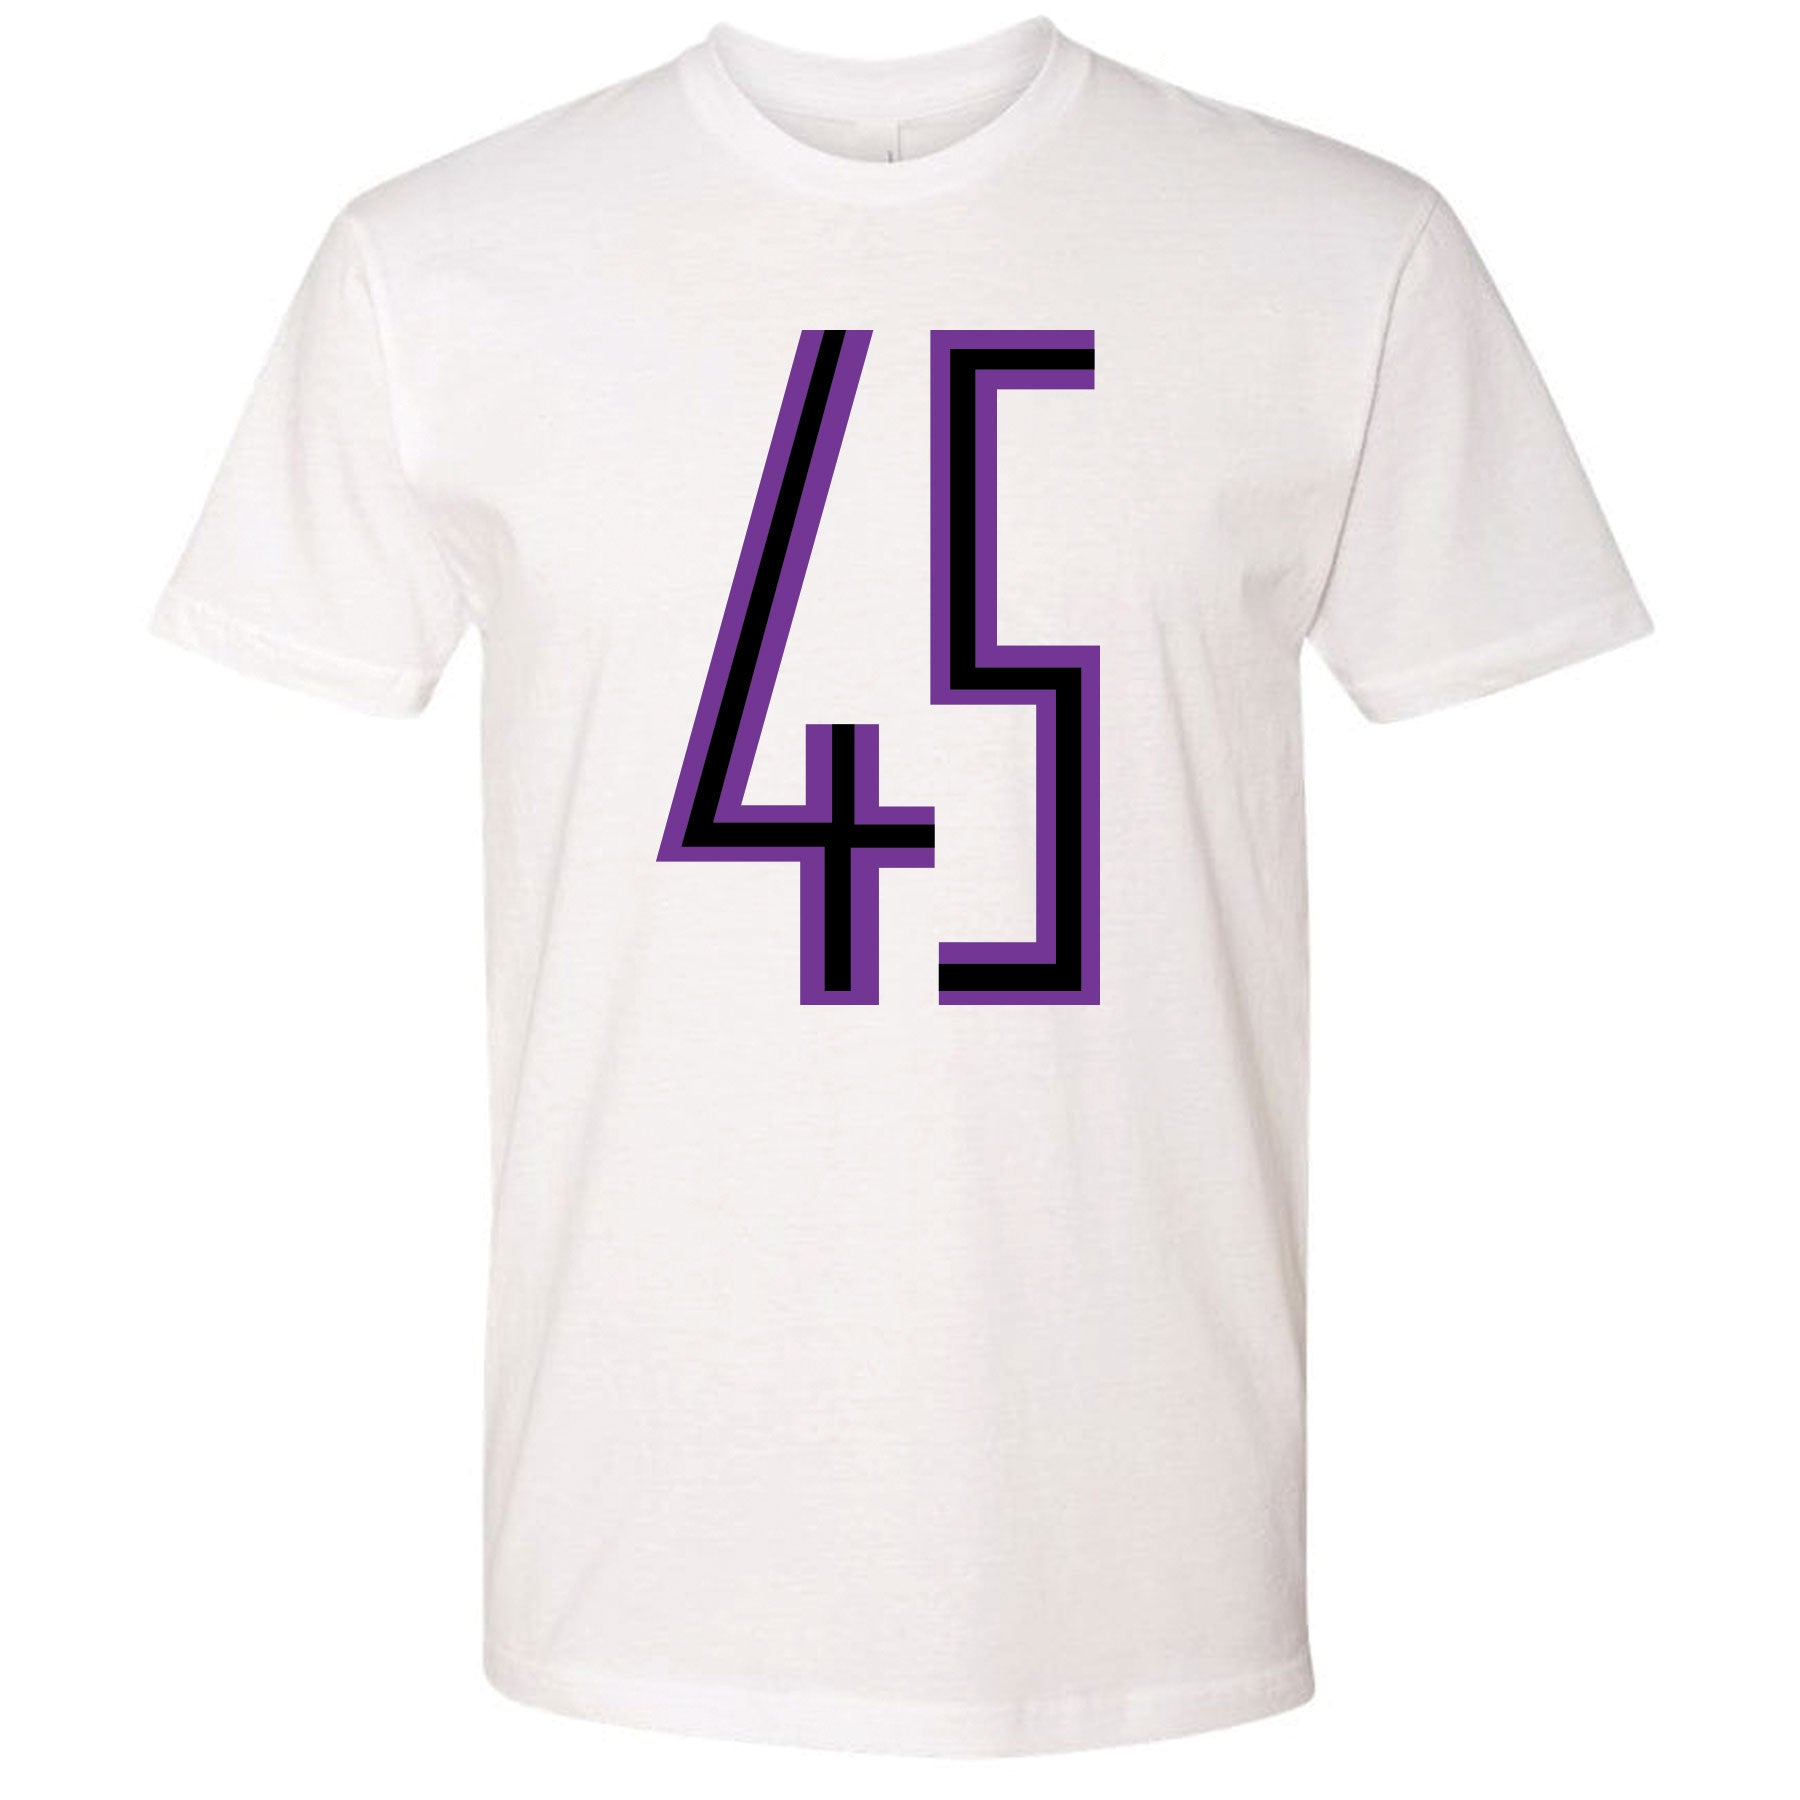 d5df6cc6142c54 ... Printed on the front of the Jordan 11 Concord 45s white sneaker matching  t-shirt